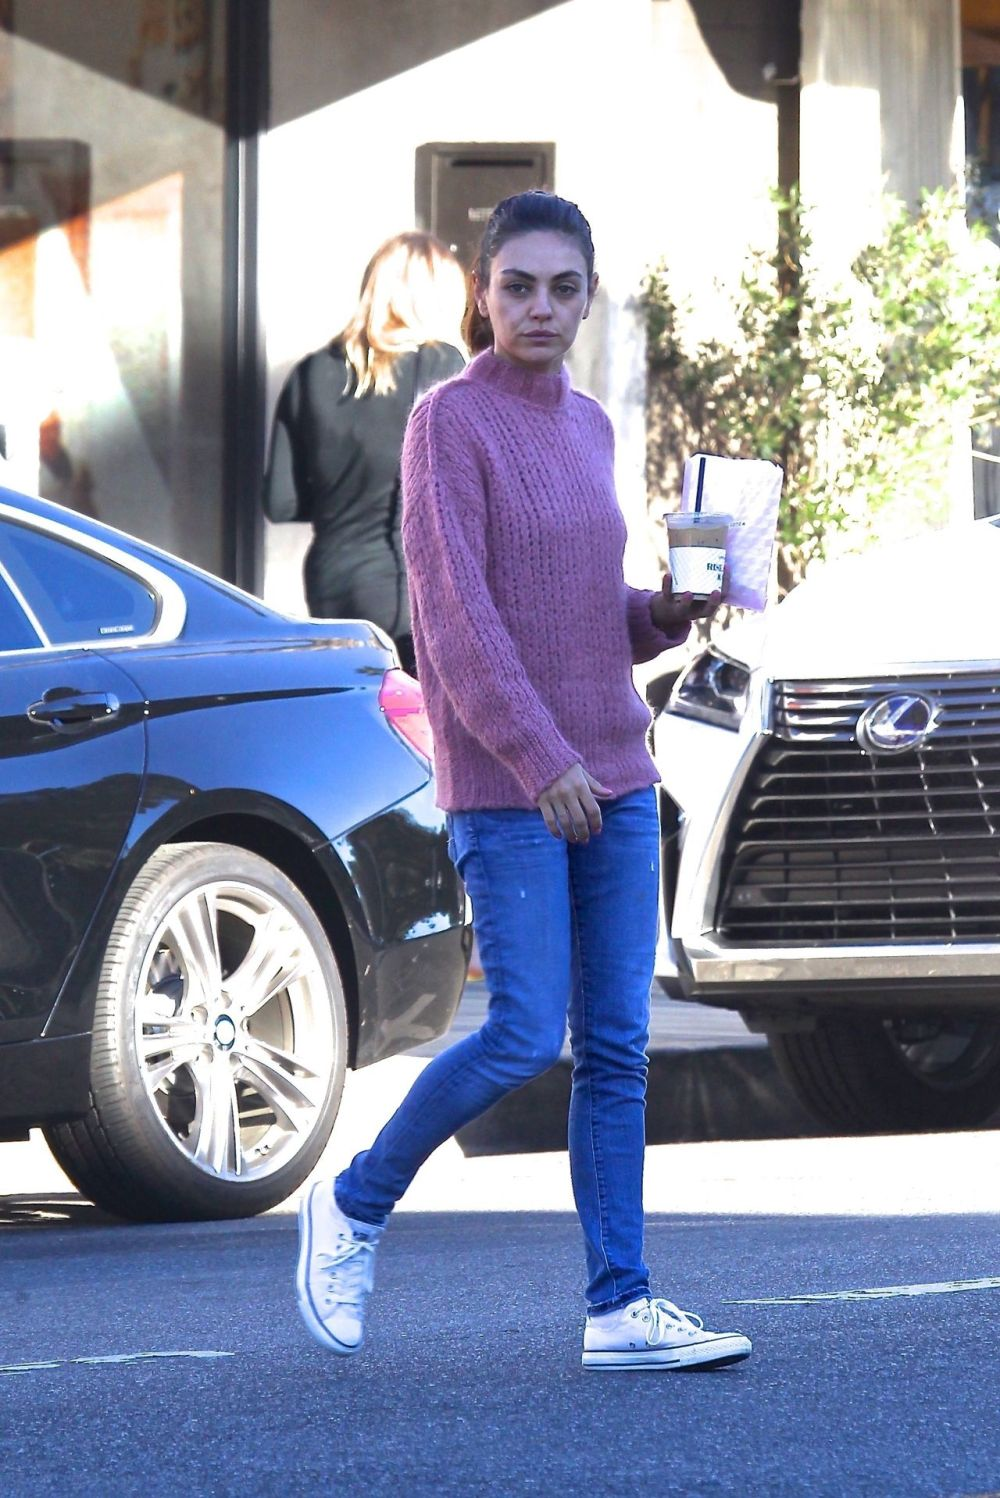 Mila Kunis (35) has lost a lot of weight and looks tired (PHOTOS)